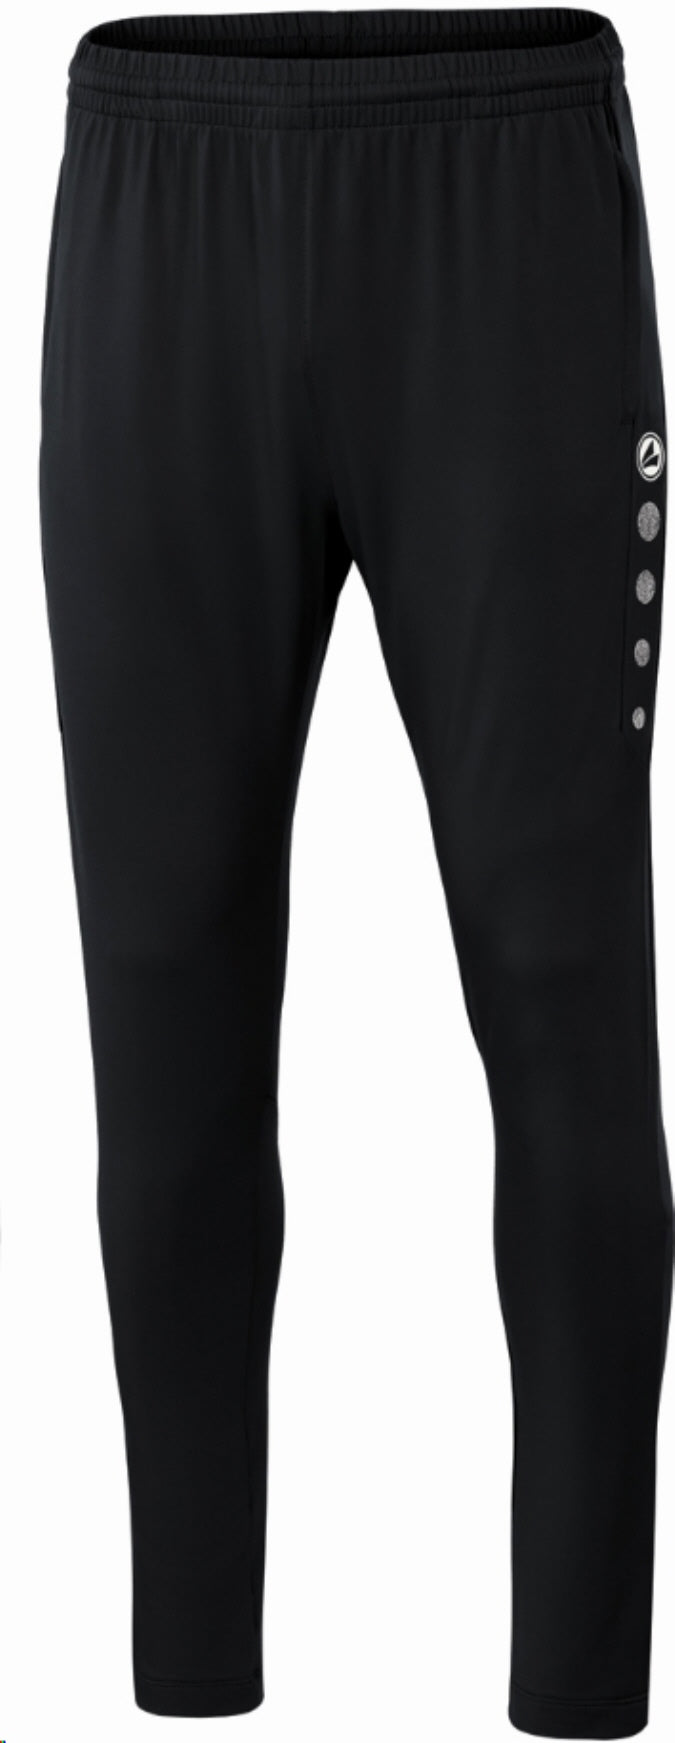 ADULT JAKO BALLYMOTE CELTIC TRAINING PANTS BC8420